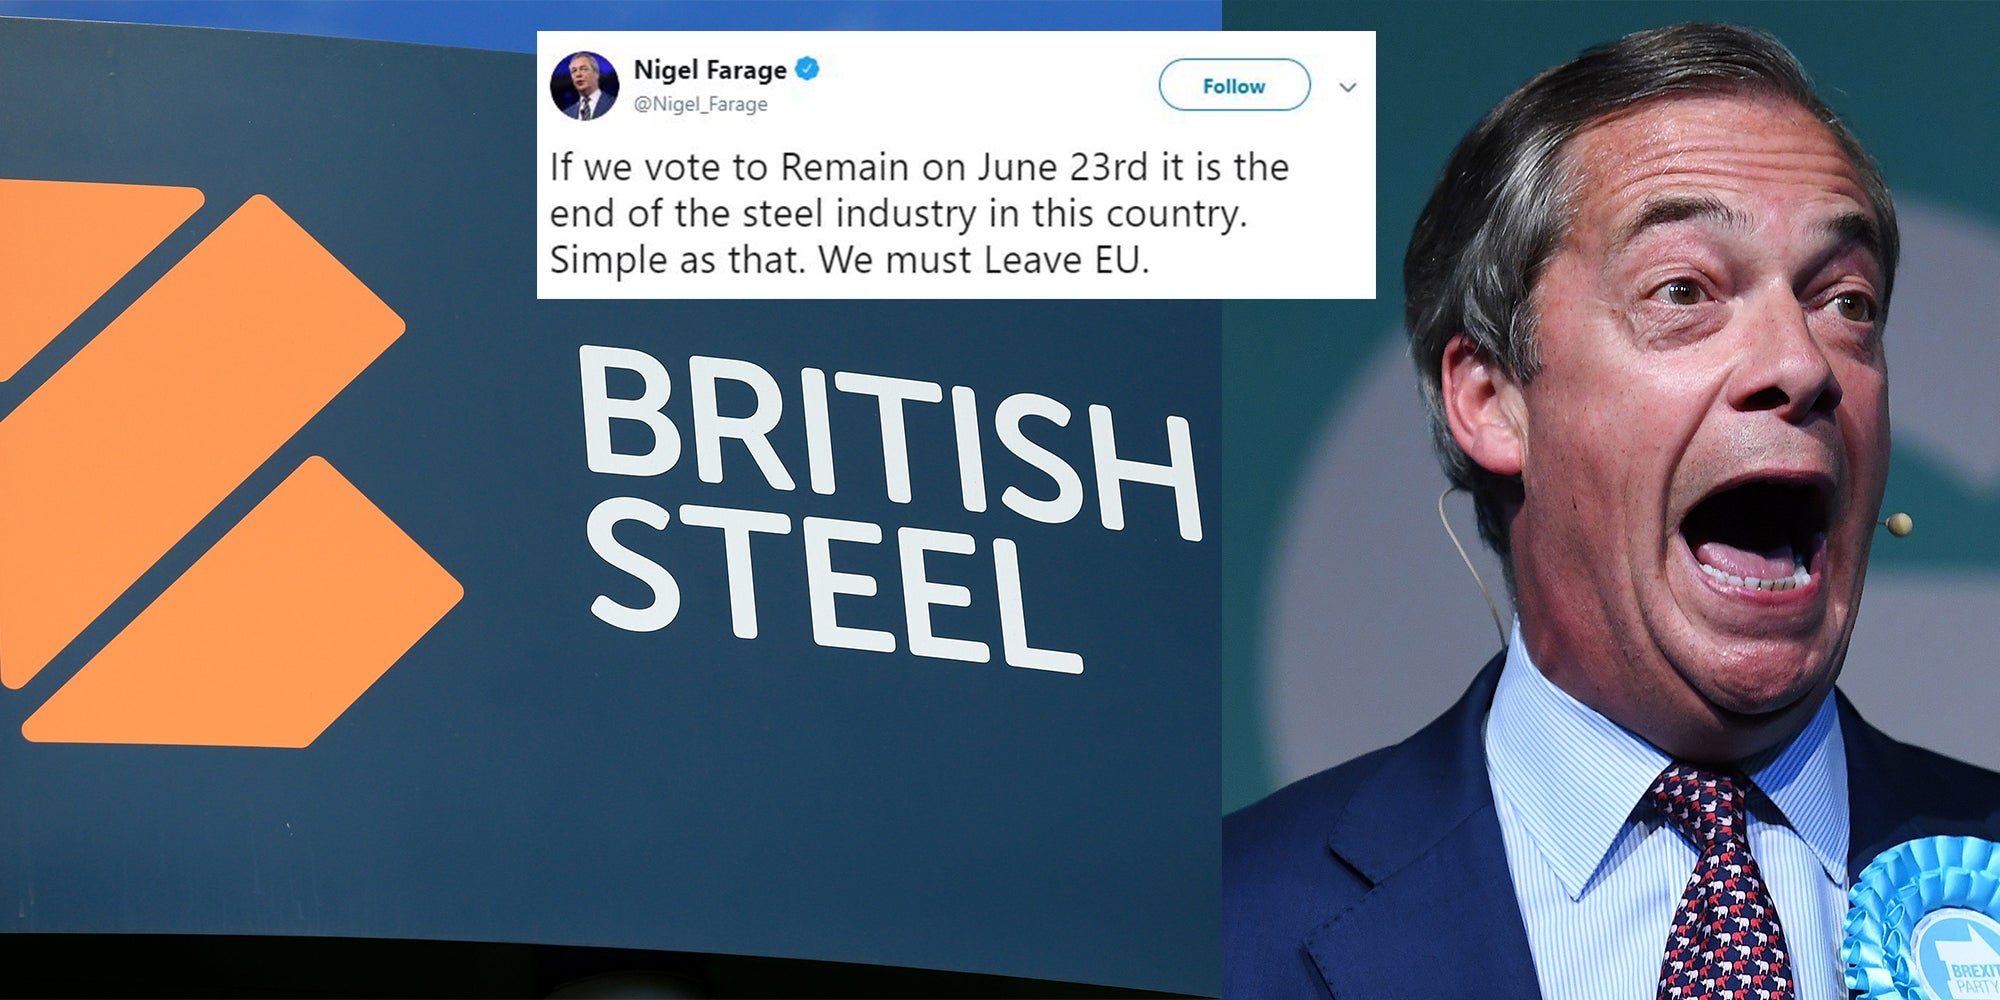 Nigel Farage's tweet about voting for Brexit to save the steel industry hasn't aged well